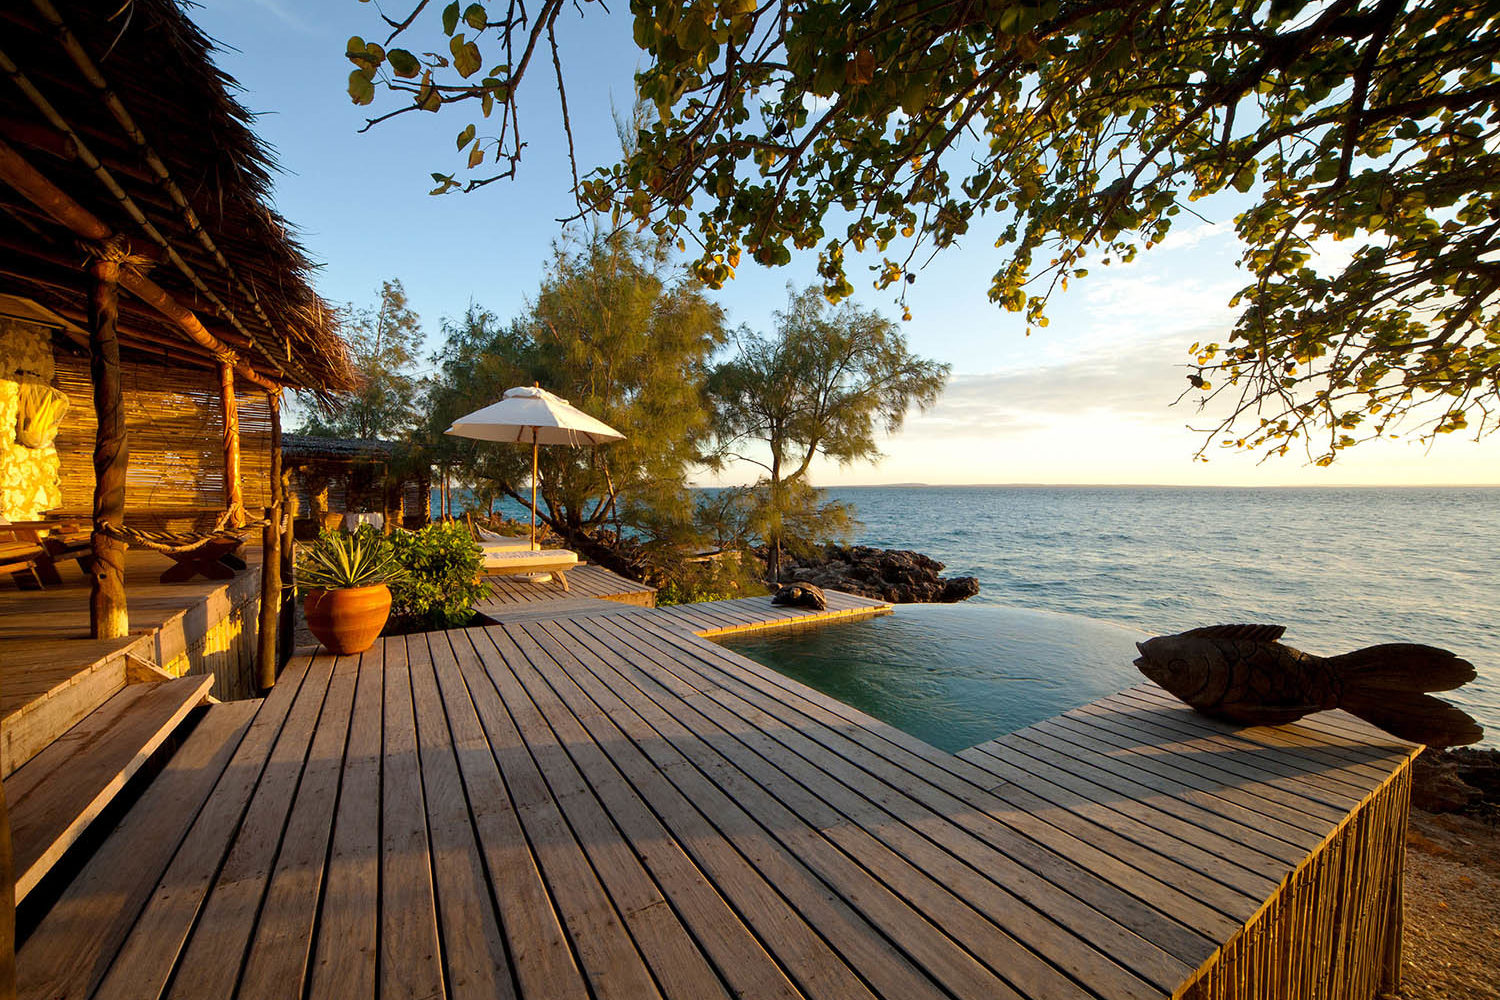 azura quilalea mozambique-lodges-zambia-in-style-quirimbas-archipelago-the-villas-deck-and-plunge-pool